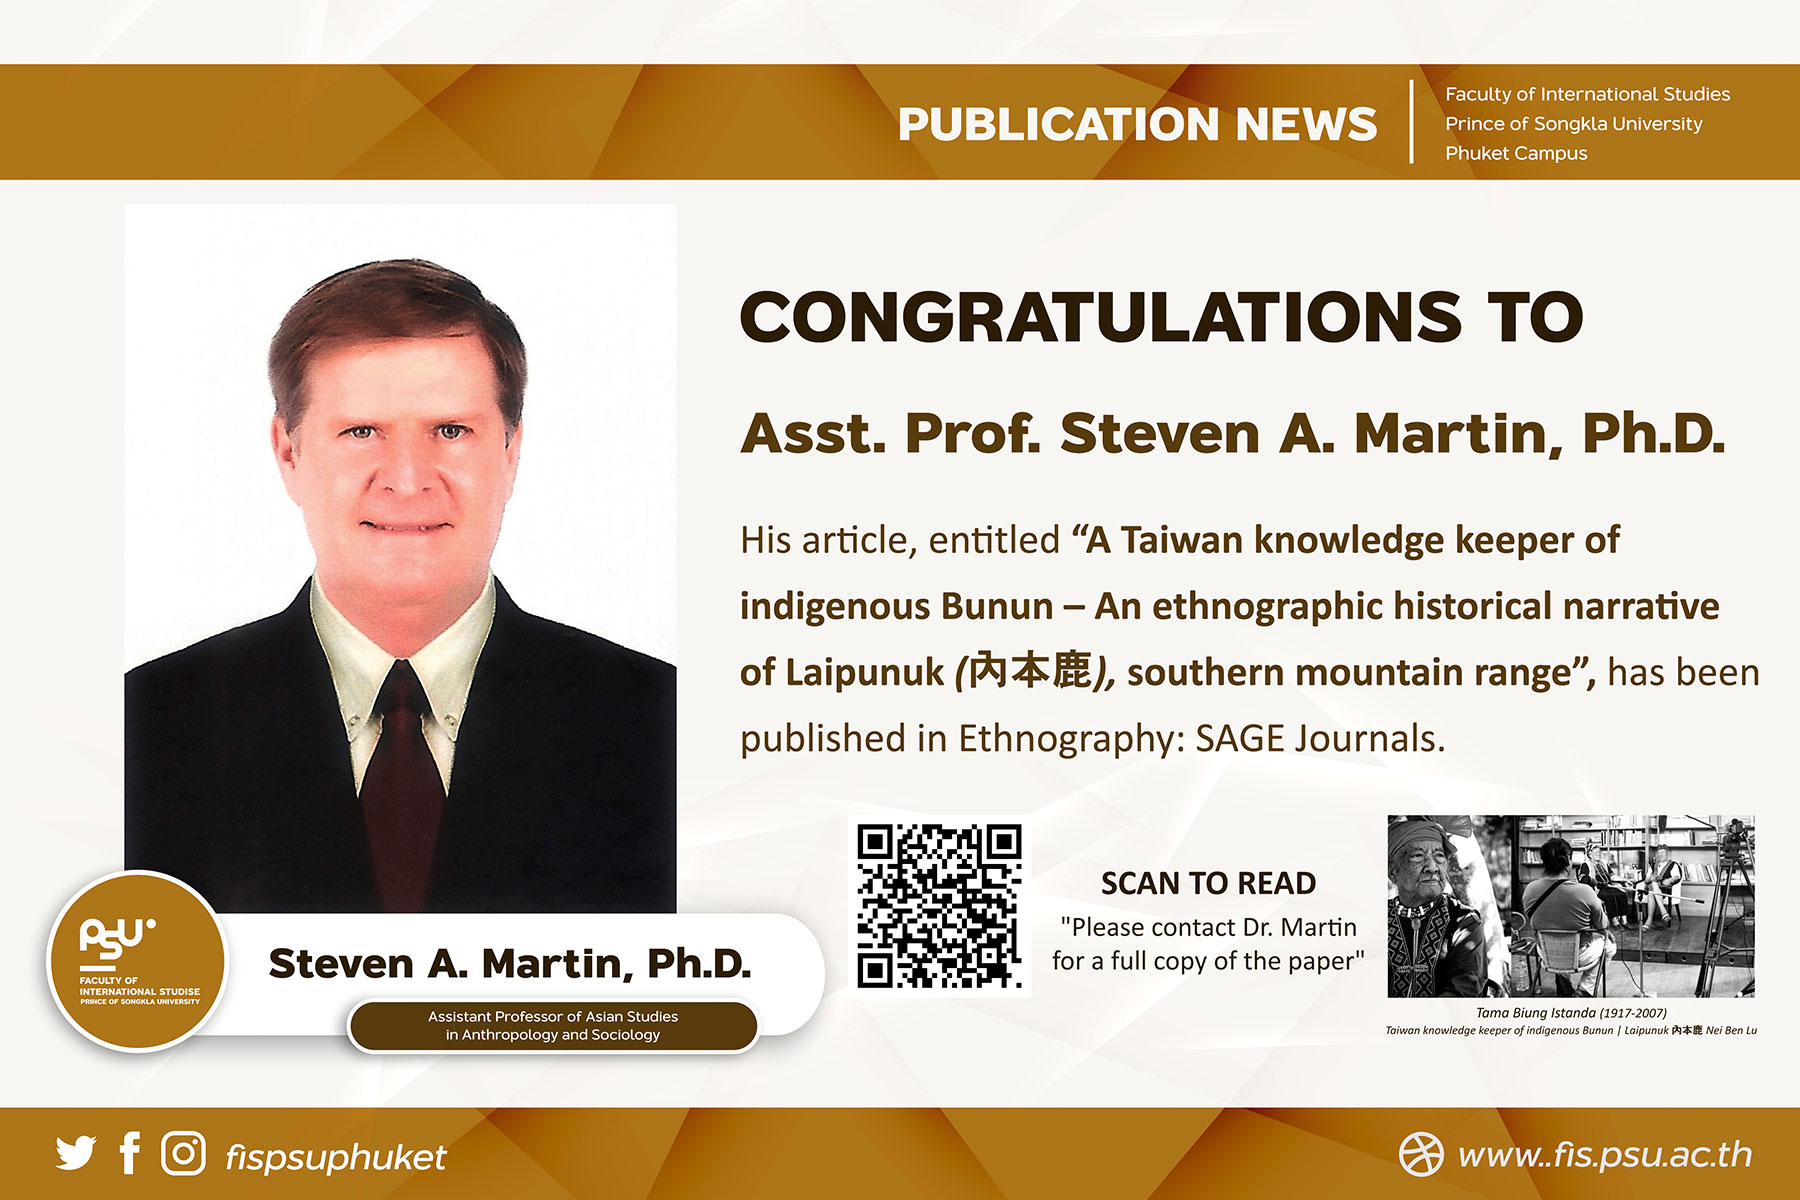 University News | Martin, S. A. (2020). A Taiwan knowledge keeper of indigenous Bunun – An ethnographic historical narrative of Laipunuk (內本鹿), southern mountain range. Ethnography